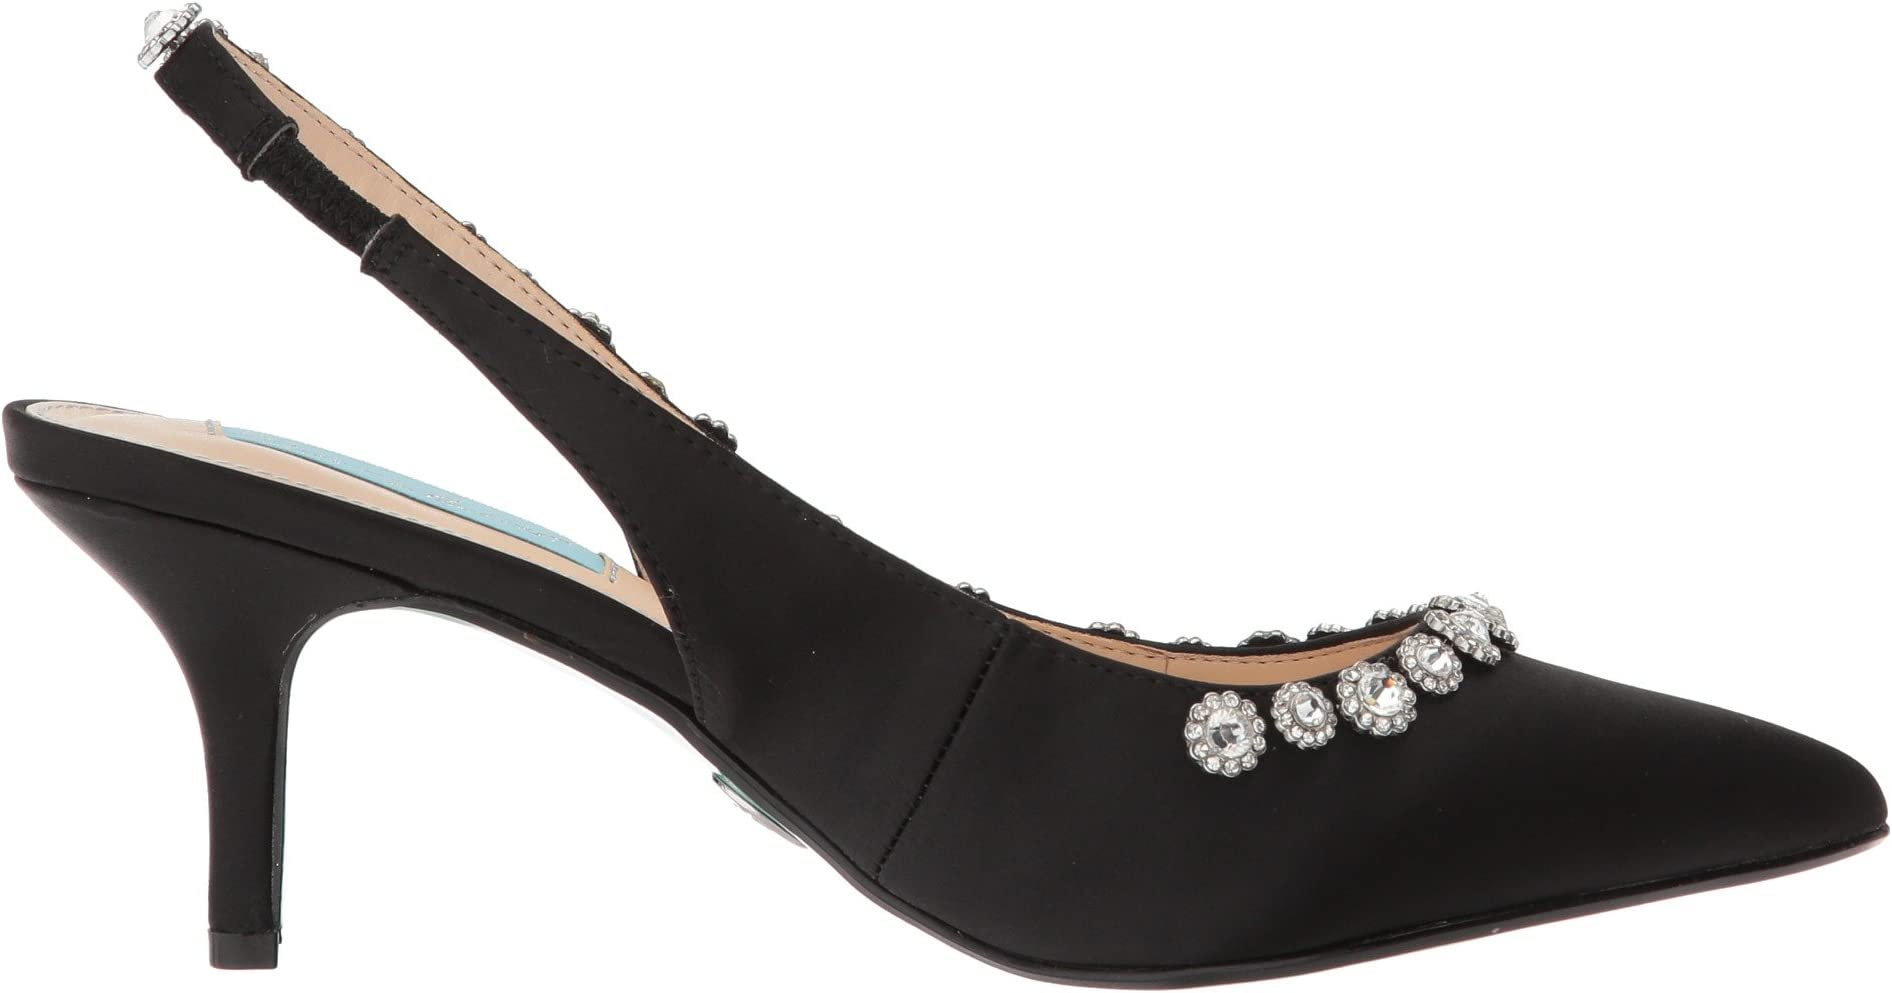 Blue by Betsey Johnson Cici | Women's shoes | 2020 Newest